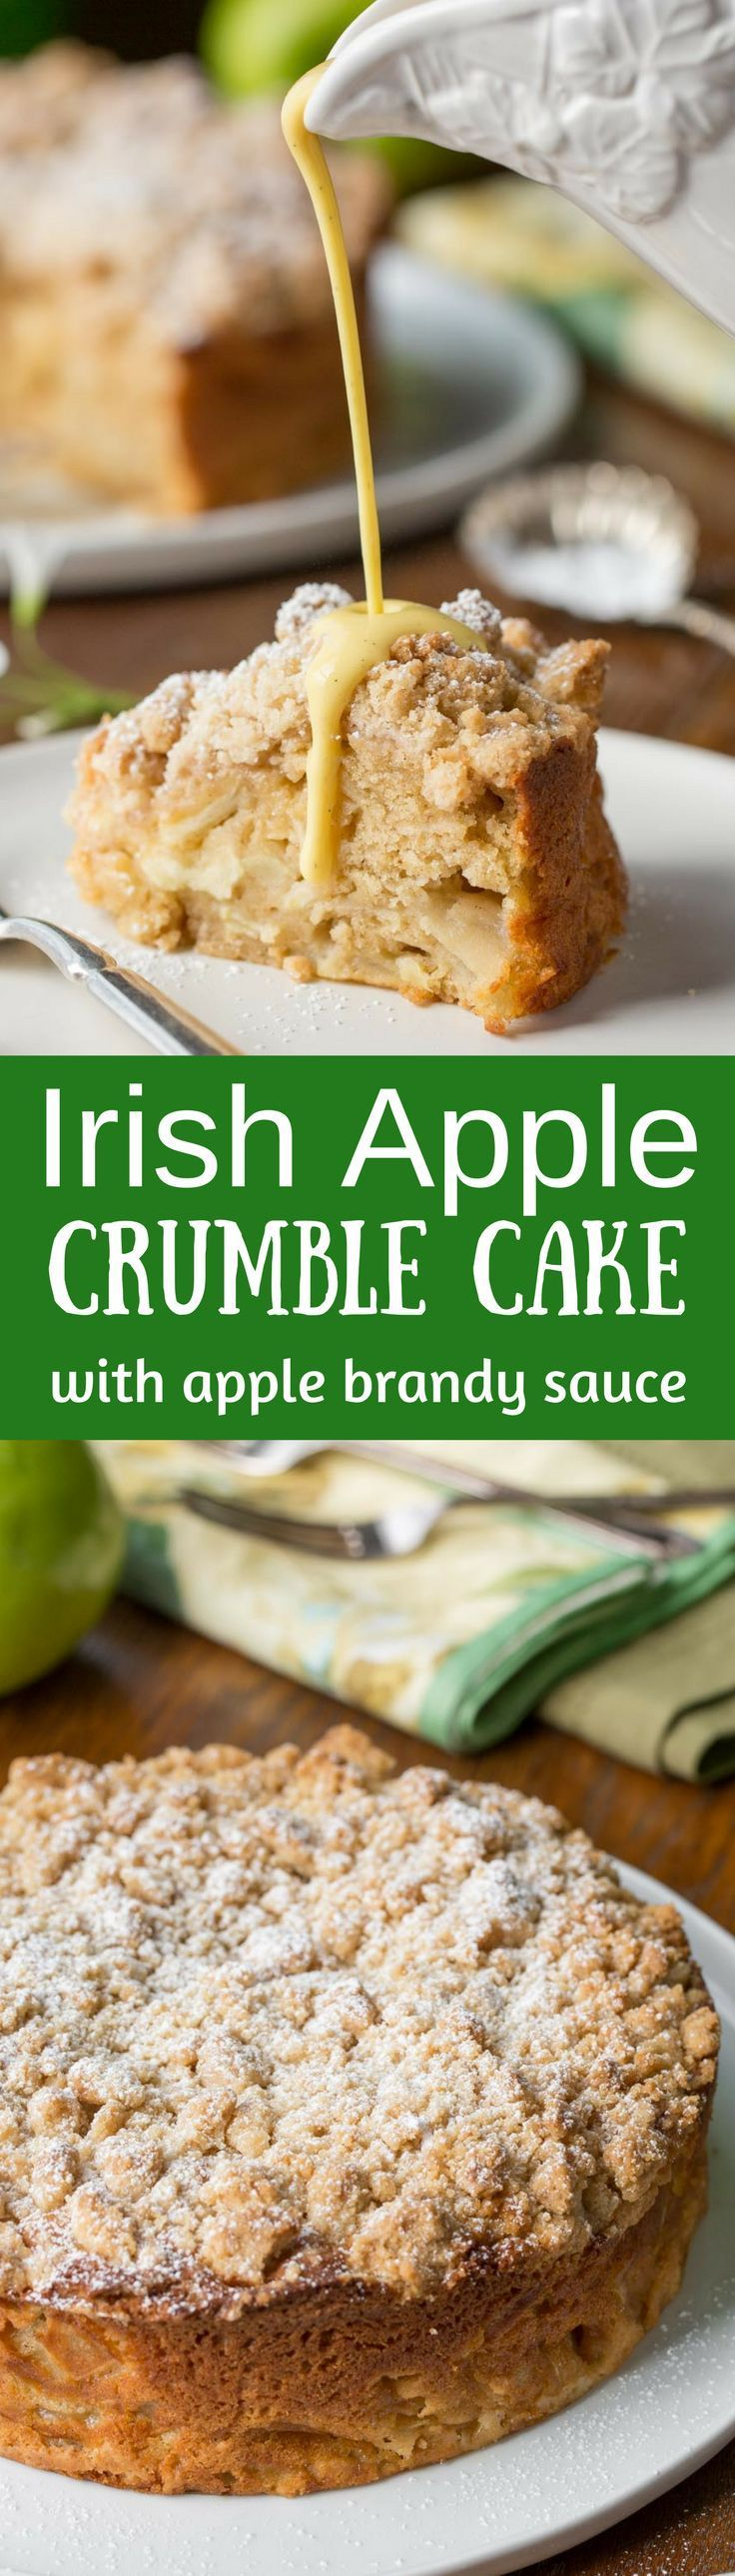 Irish Apple Crumble Cake with Apple Brandy Sauce ~ made with fresh apples, plenty of cinnamon, and a sweet crumble top, this rustic and moist cake is homey and delightful especially when drizzled with